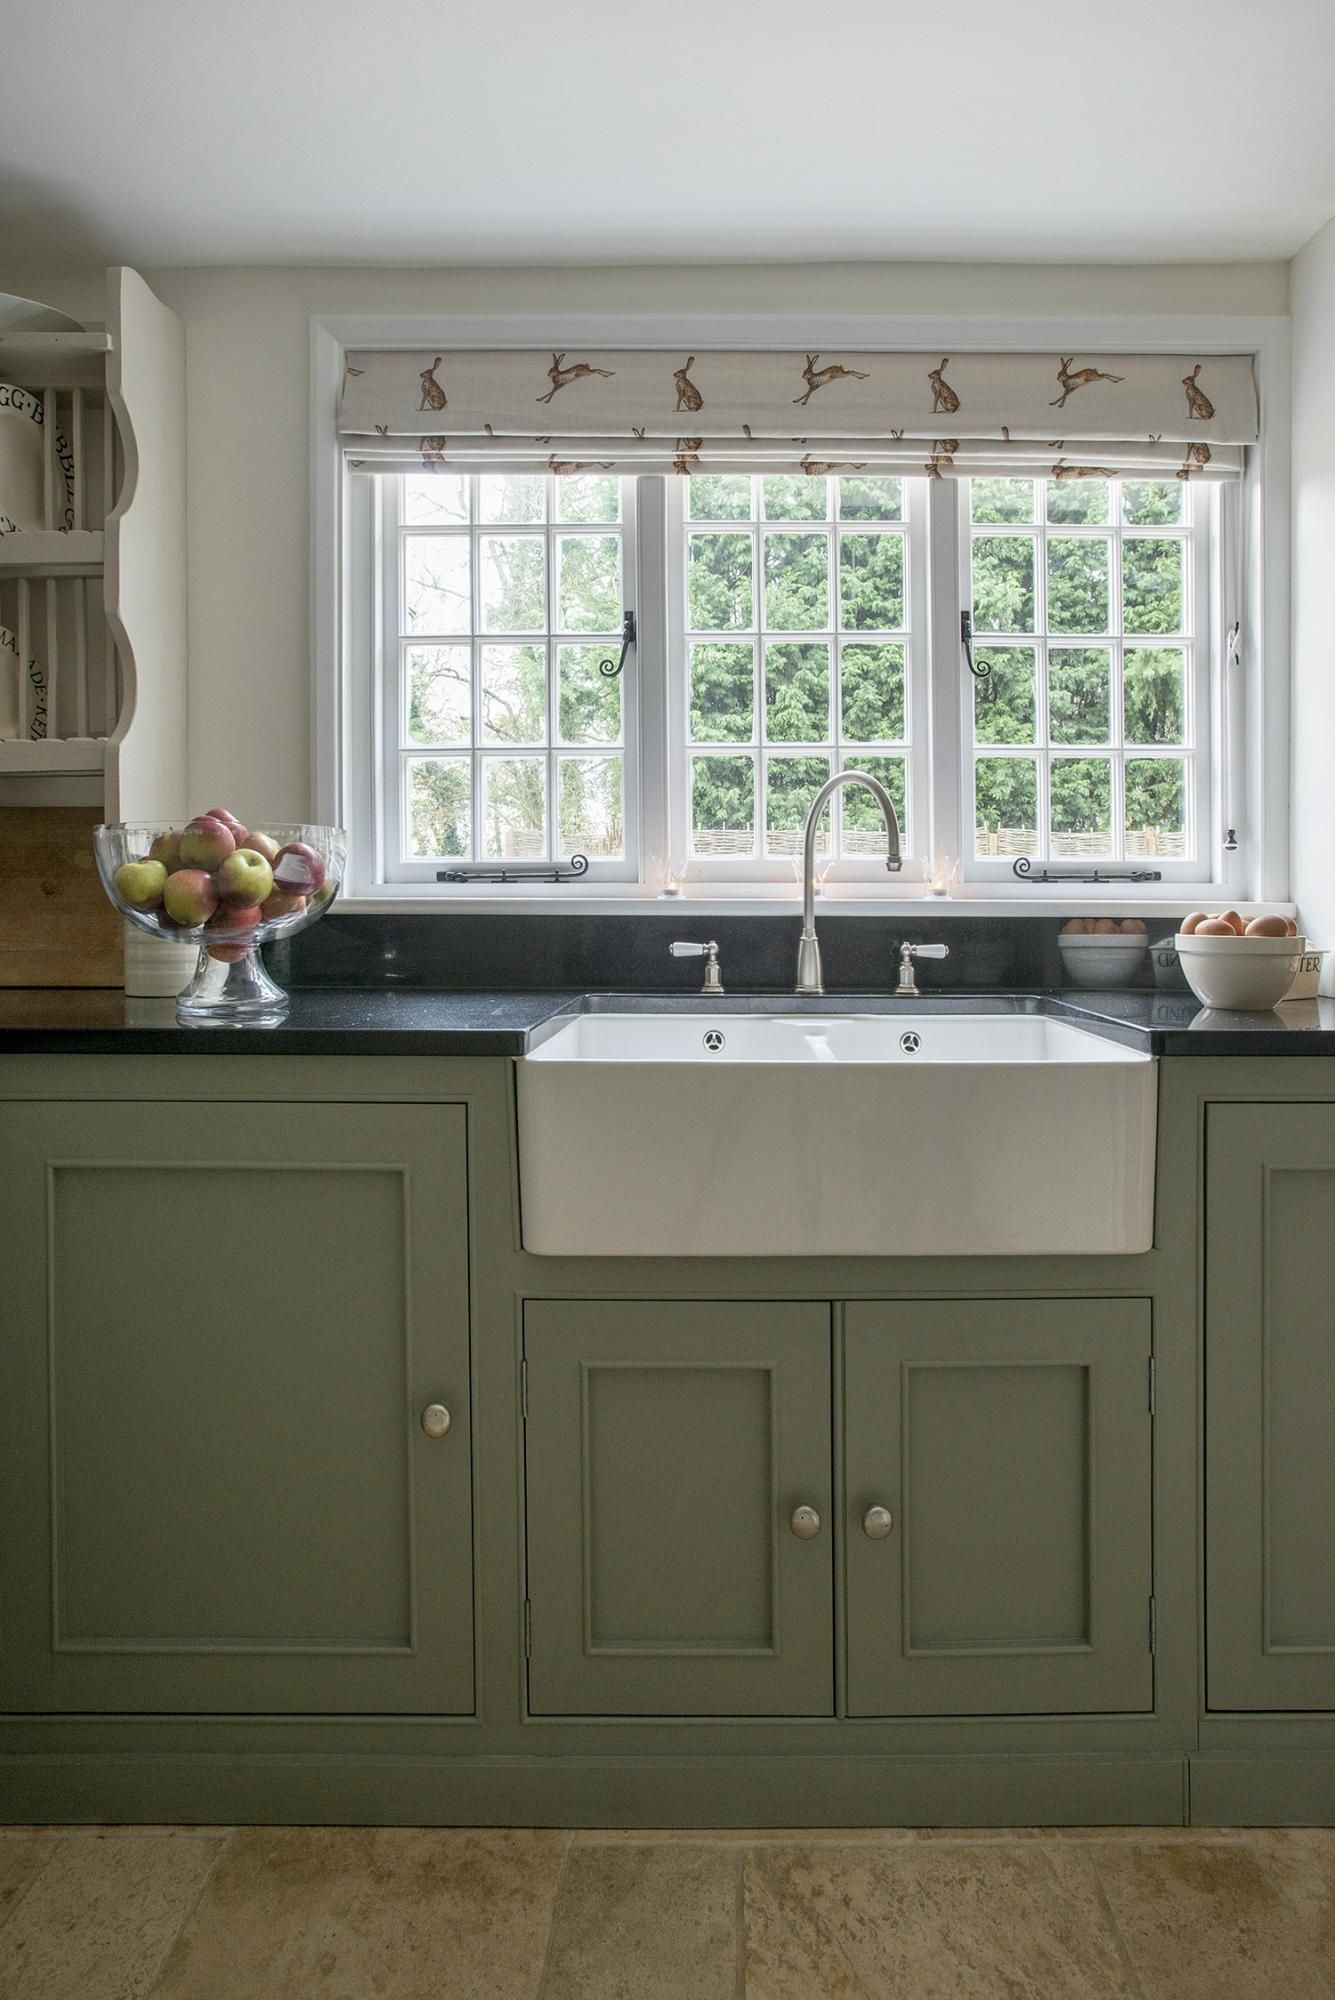 Howling Farmhouse Country Kitchens Design Sussex Surrey Middleton Bespoke Farmhouse Country Kitchens Design Sussex Surrey Middleton Country Kitchen Design S